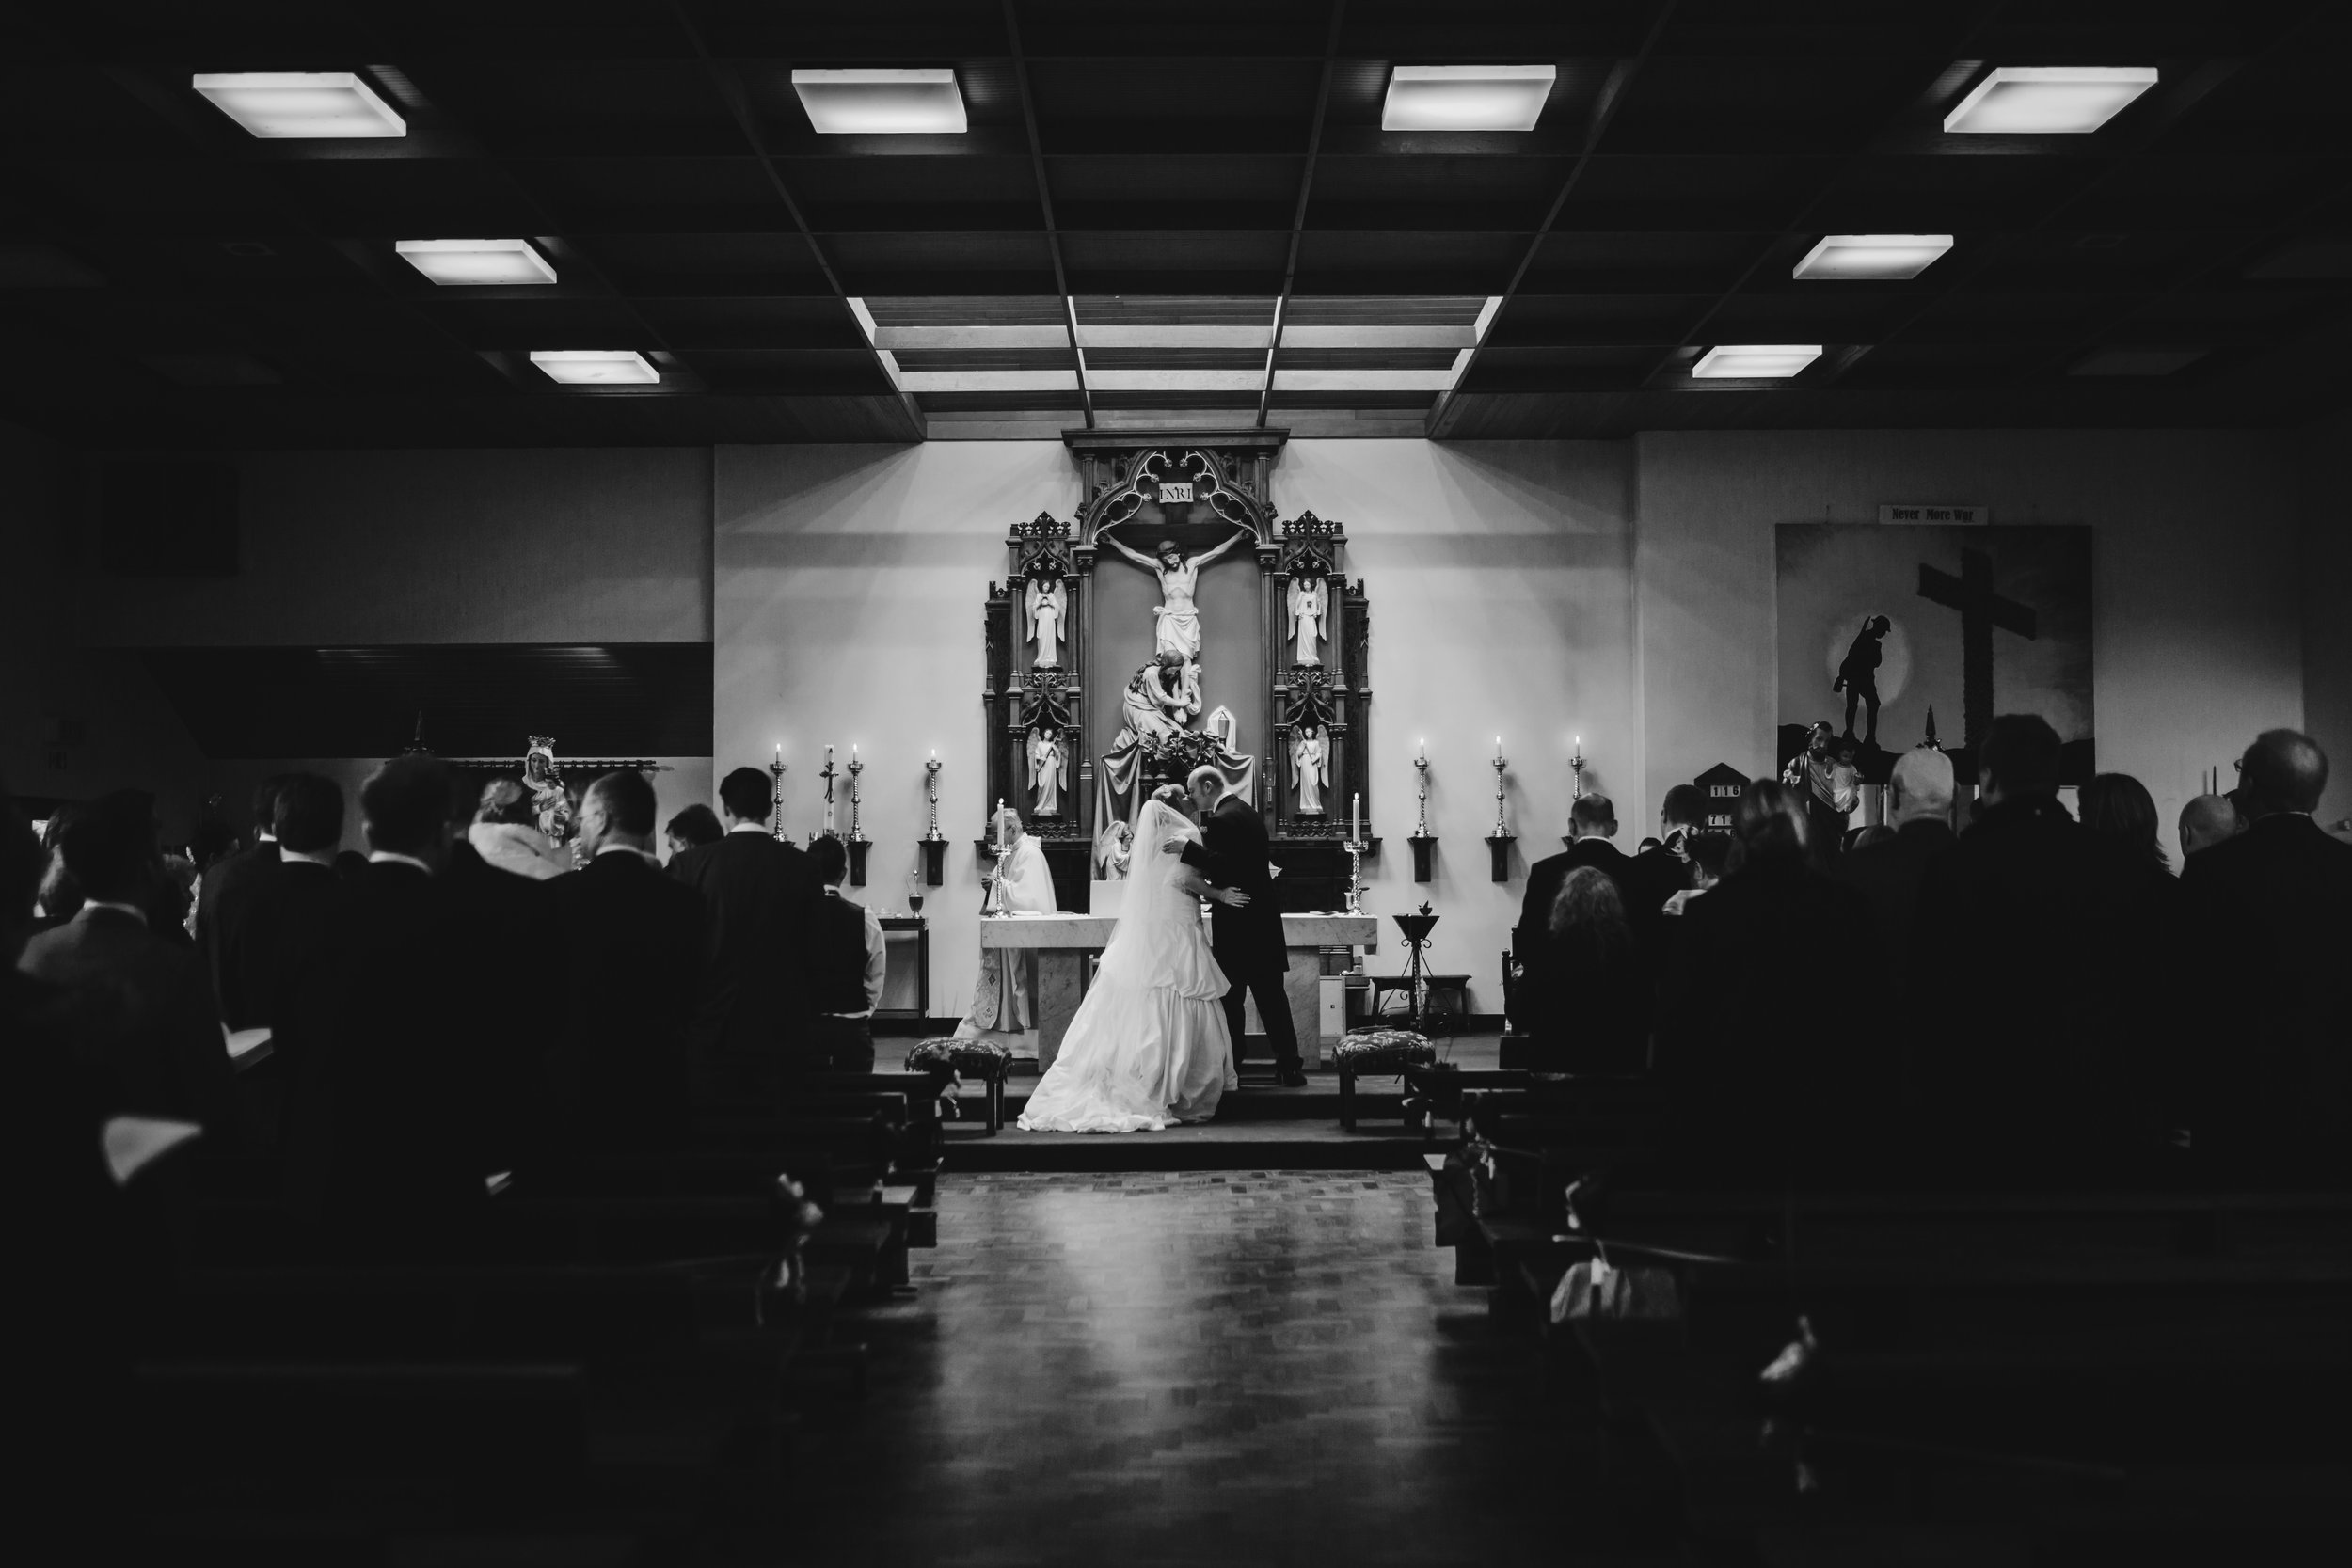 Creative wedding photography - black and white first kiss picture